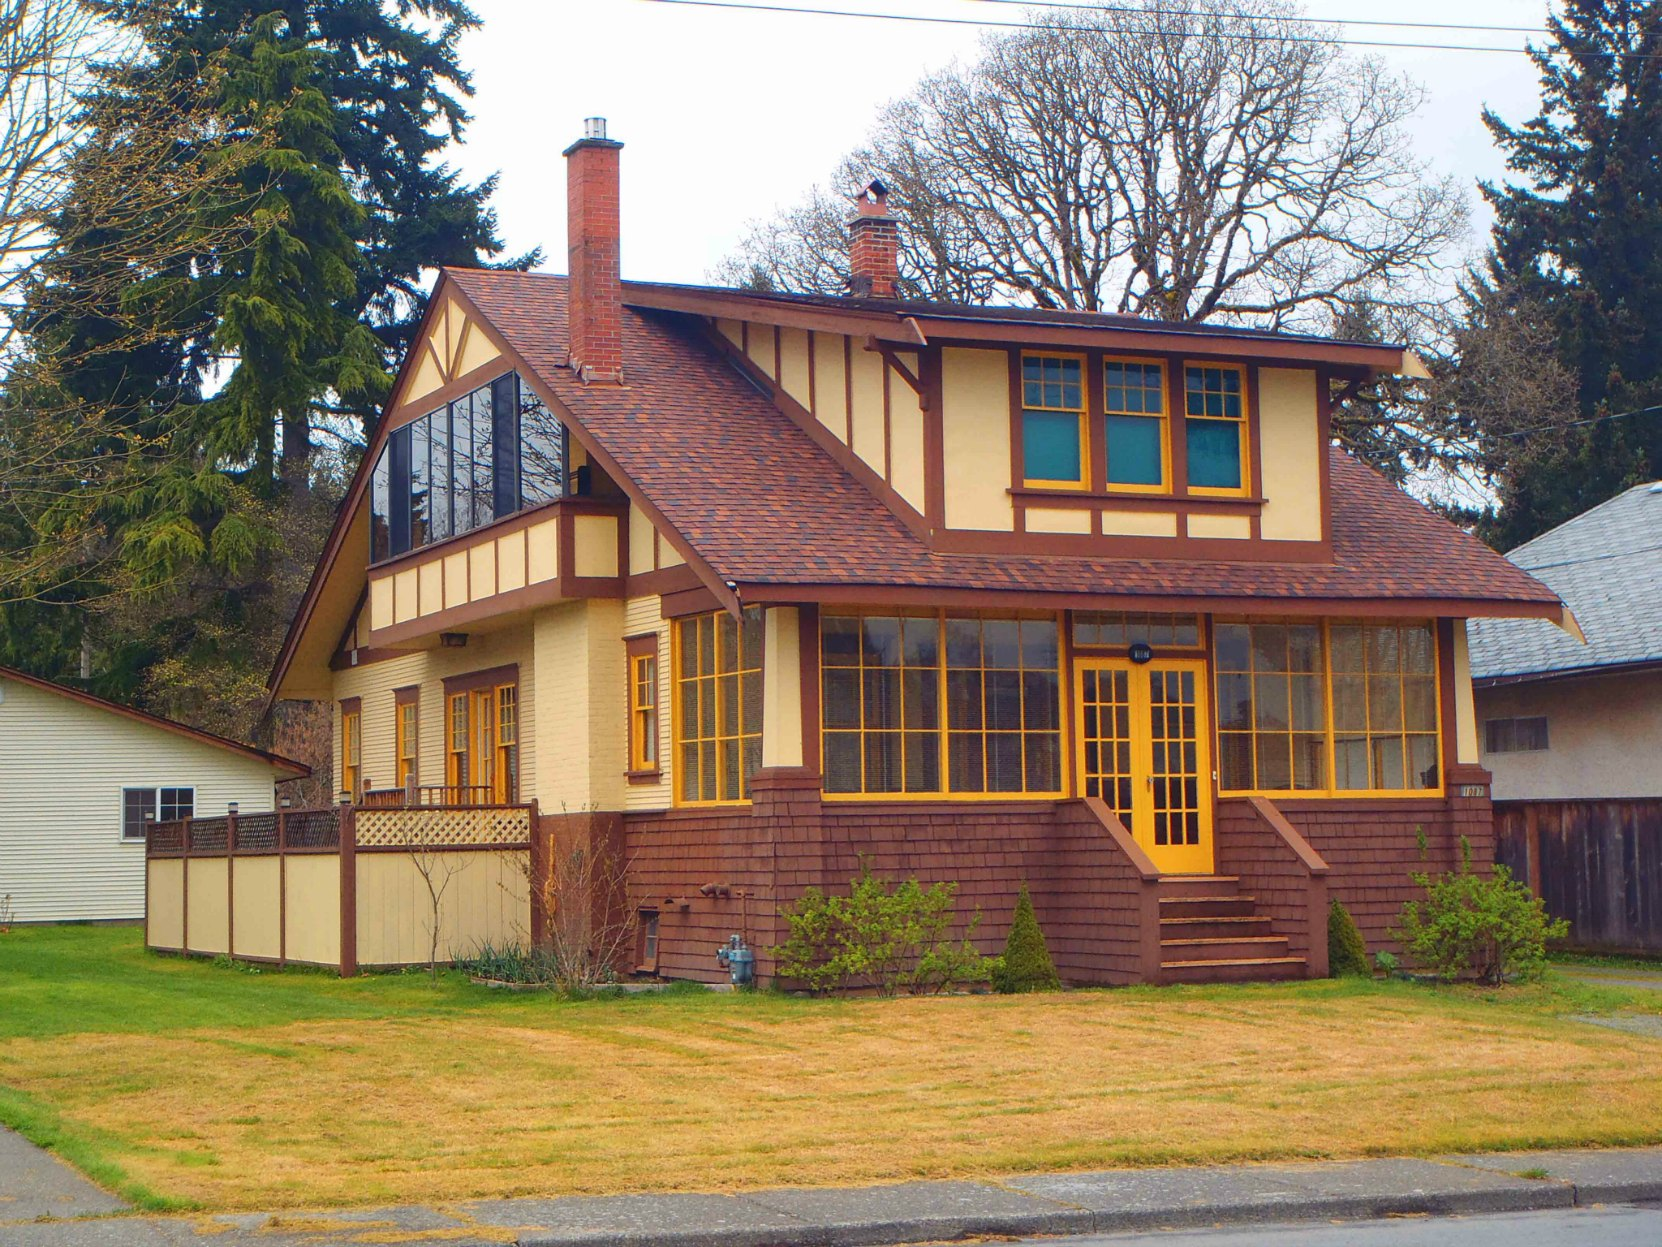 Charles W. O'Neill's house at 1087 Islay Street, Duncan, B.C., as it appears today